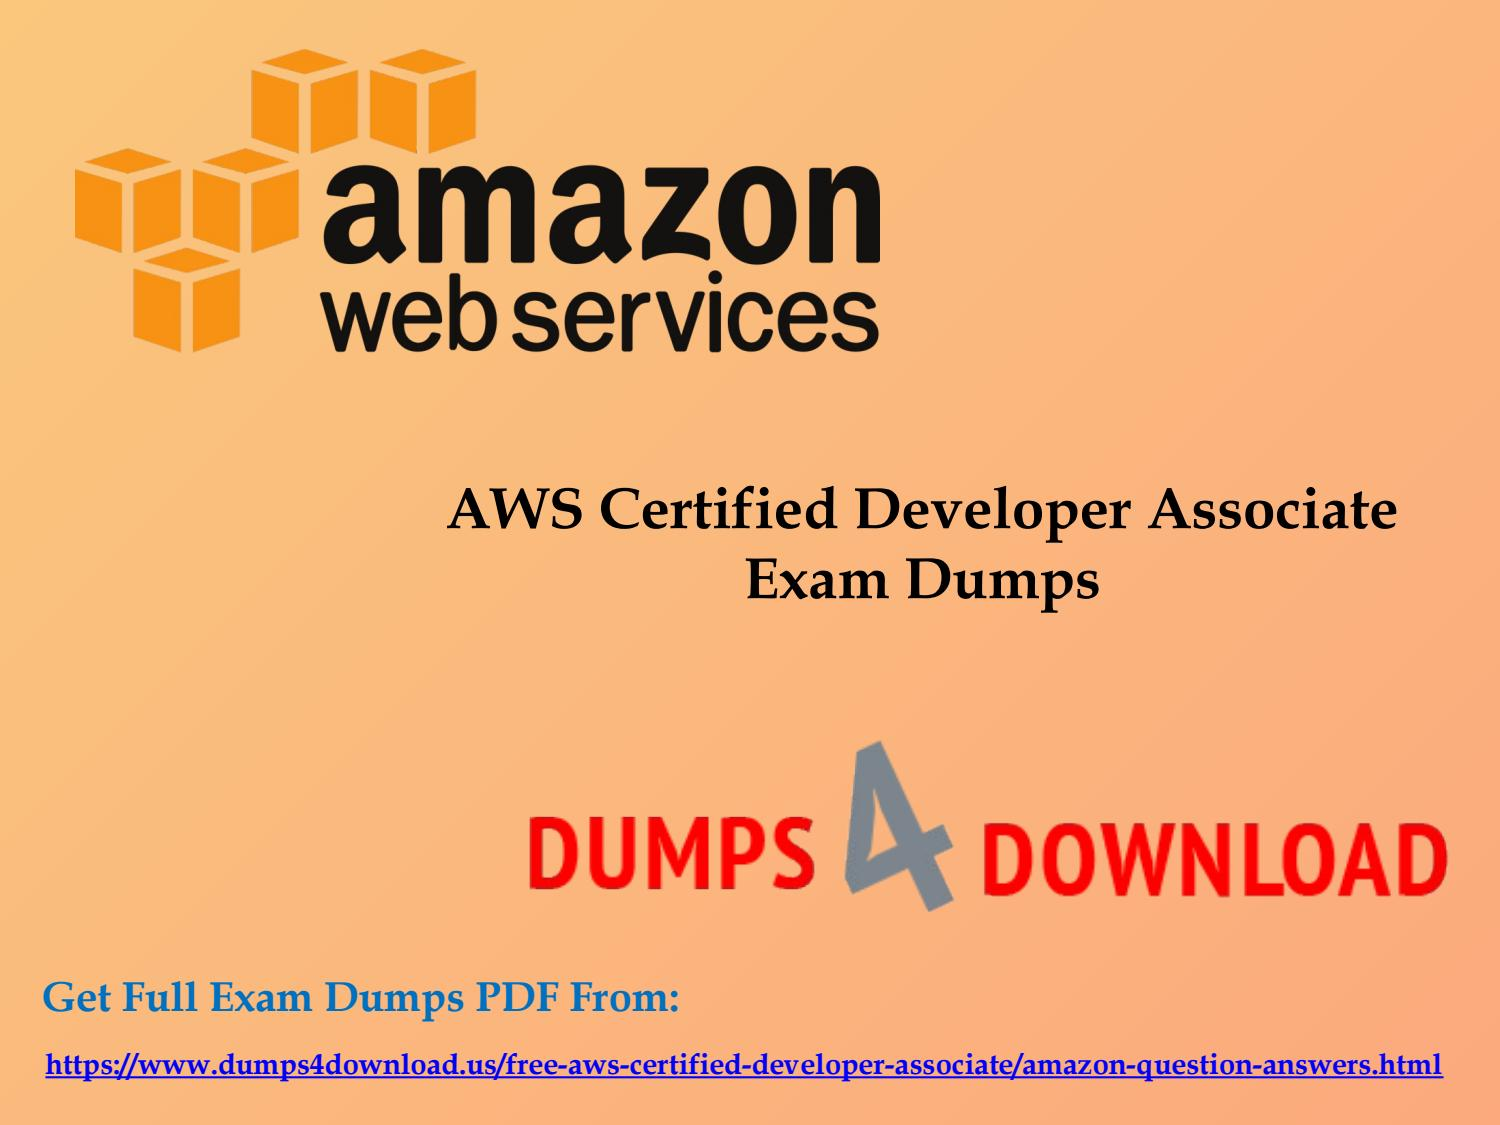 Buy march new aws certified developer associate exam questions by buy march new aws certified developer associate exam questions by dumps4download issuu 1betcityfo Images